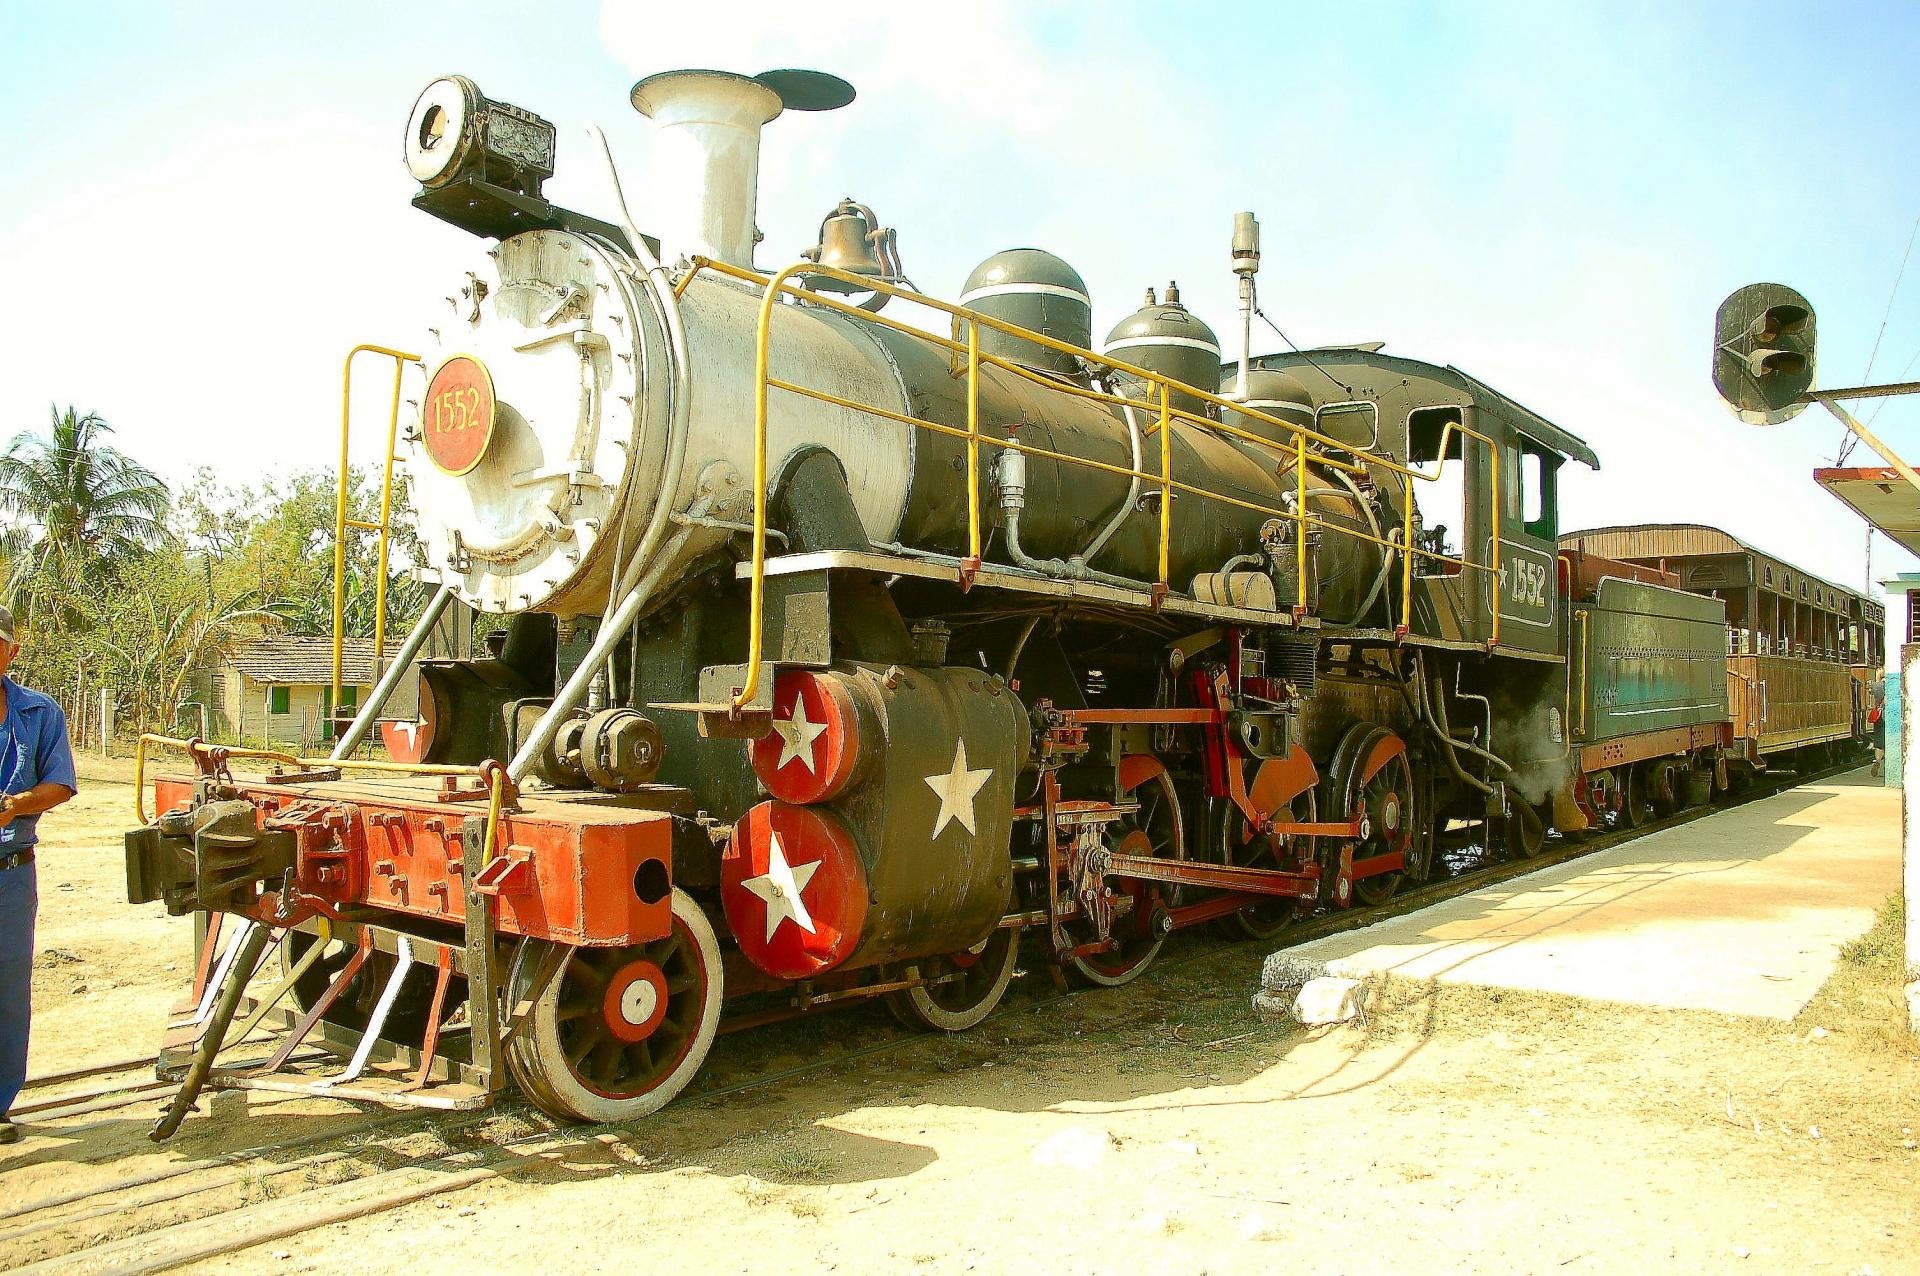 La locomotive du sucre